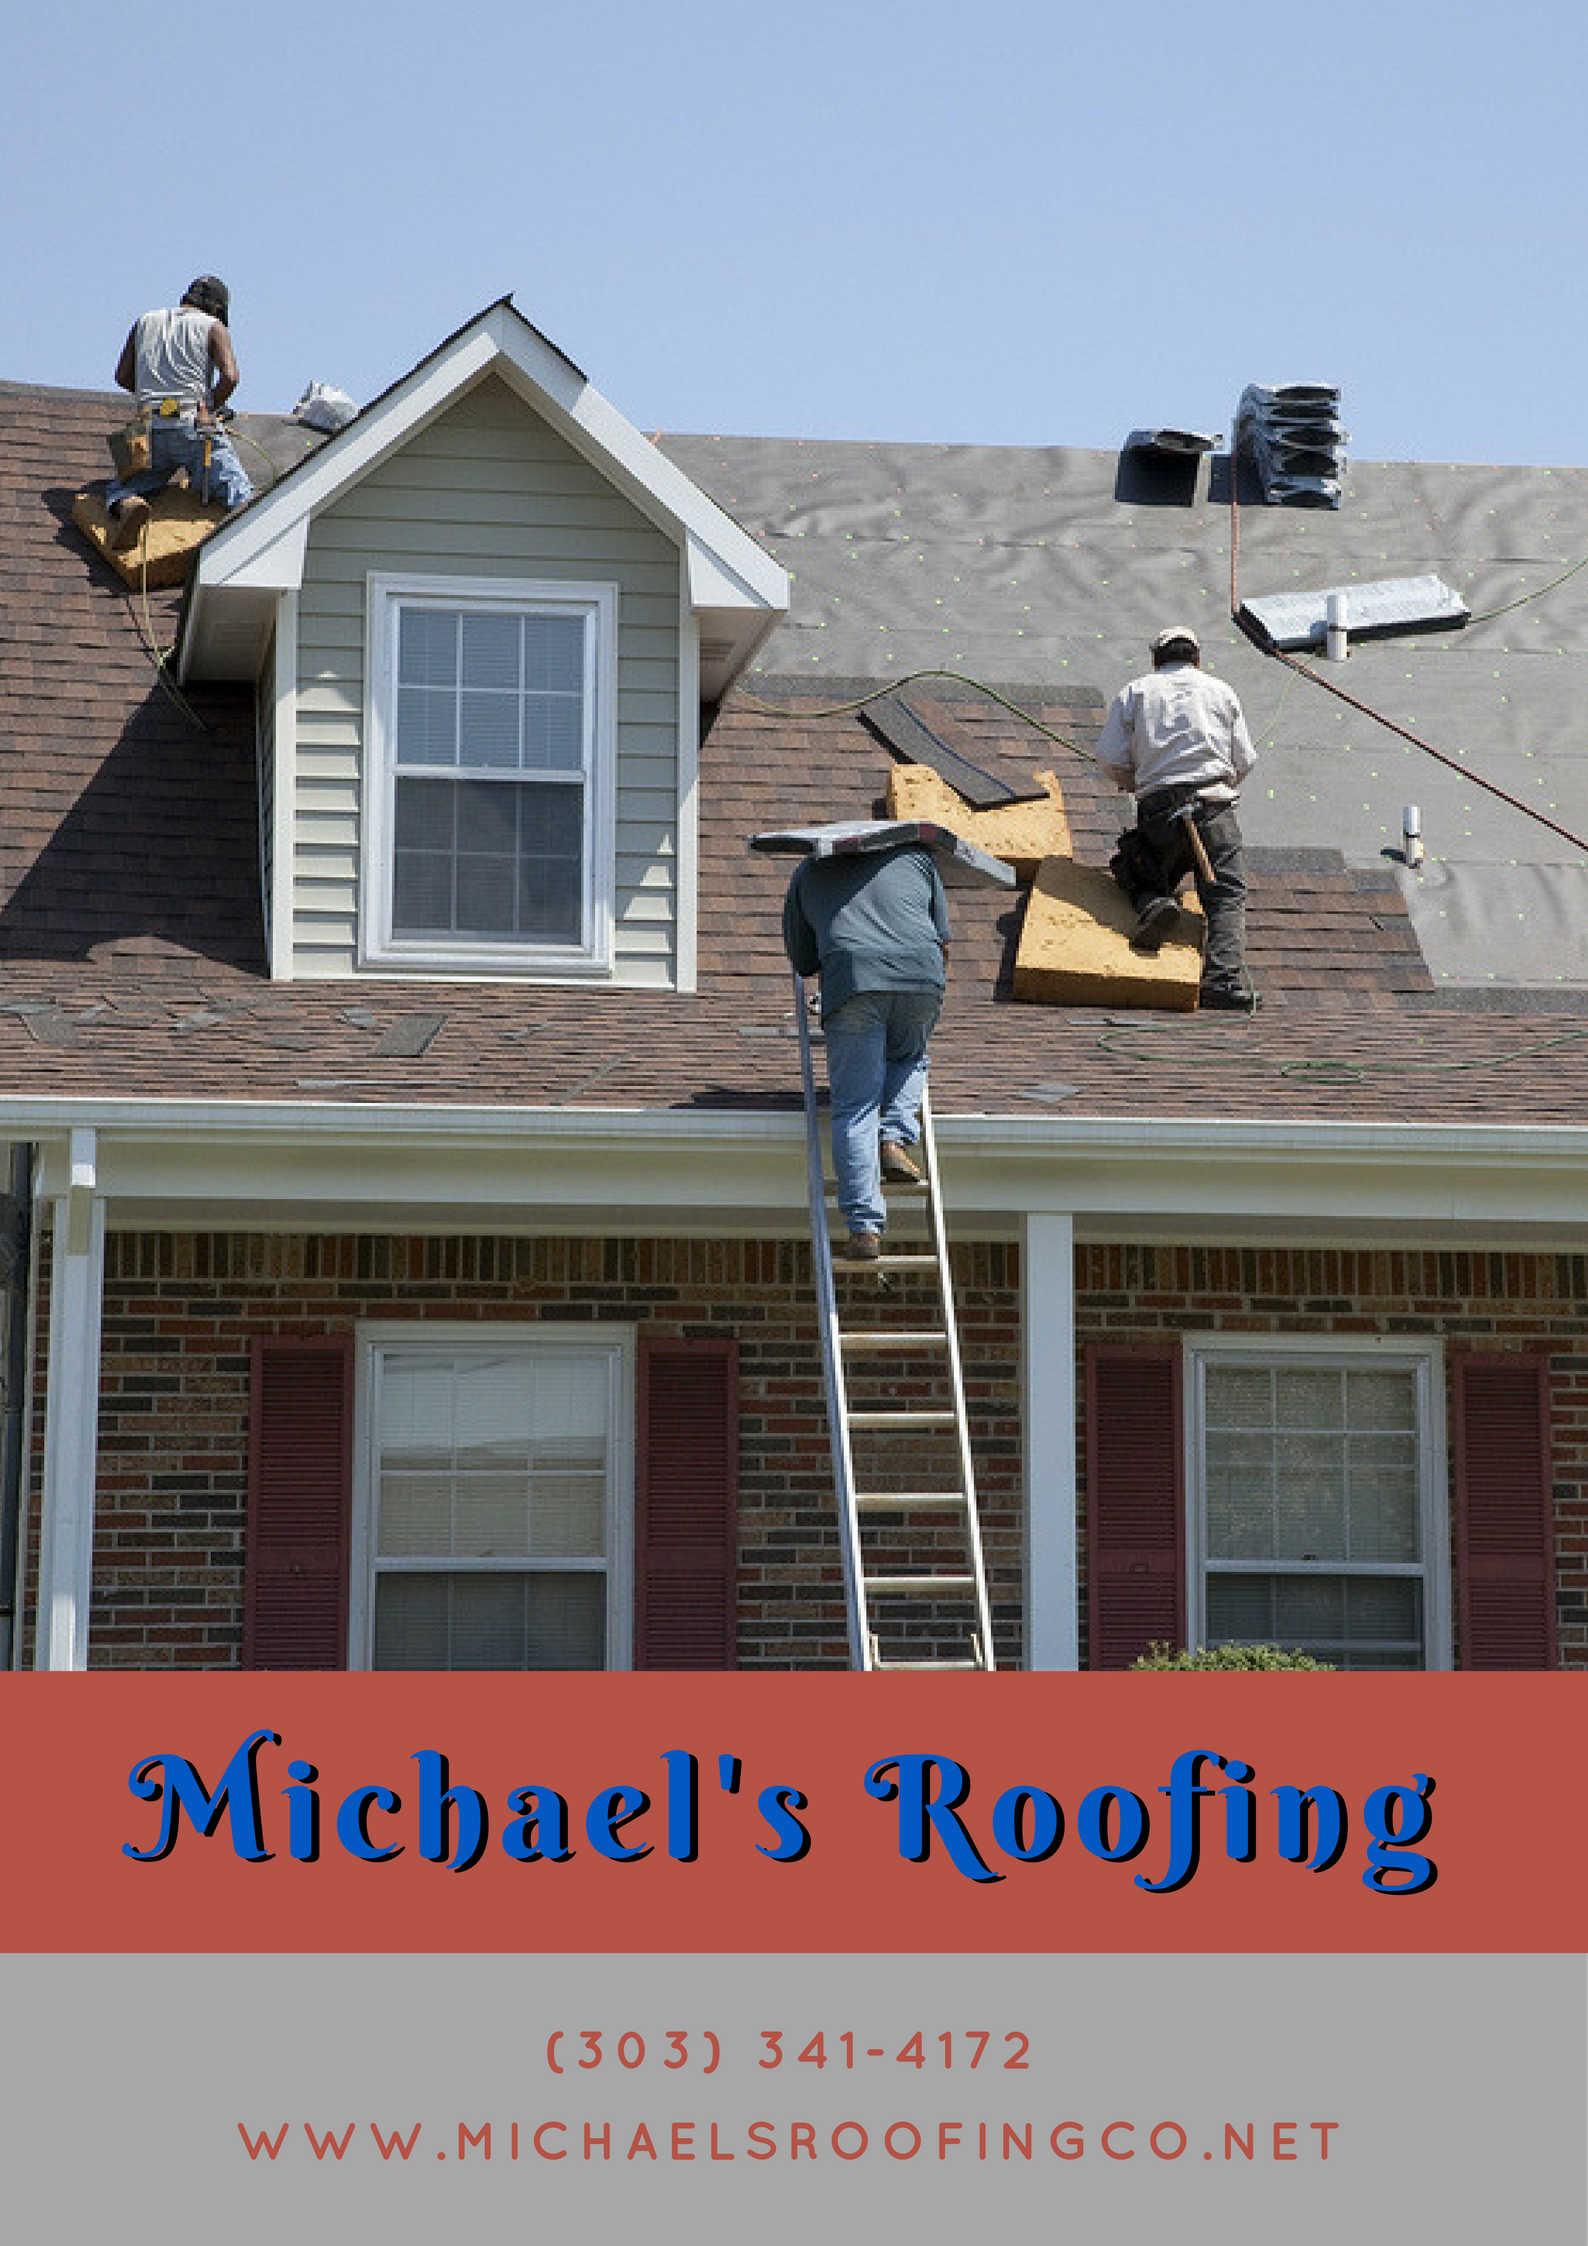 Roofing Company In Aurora Co Residential Roofing In Aurora Co Commercial Roofing In Aurora Co Roof Repai Roof Repair Roofing Home Improvement Contractors